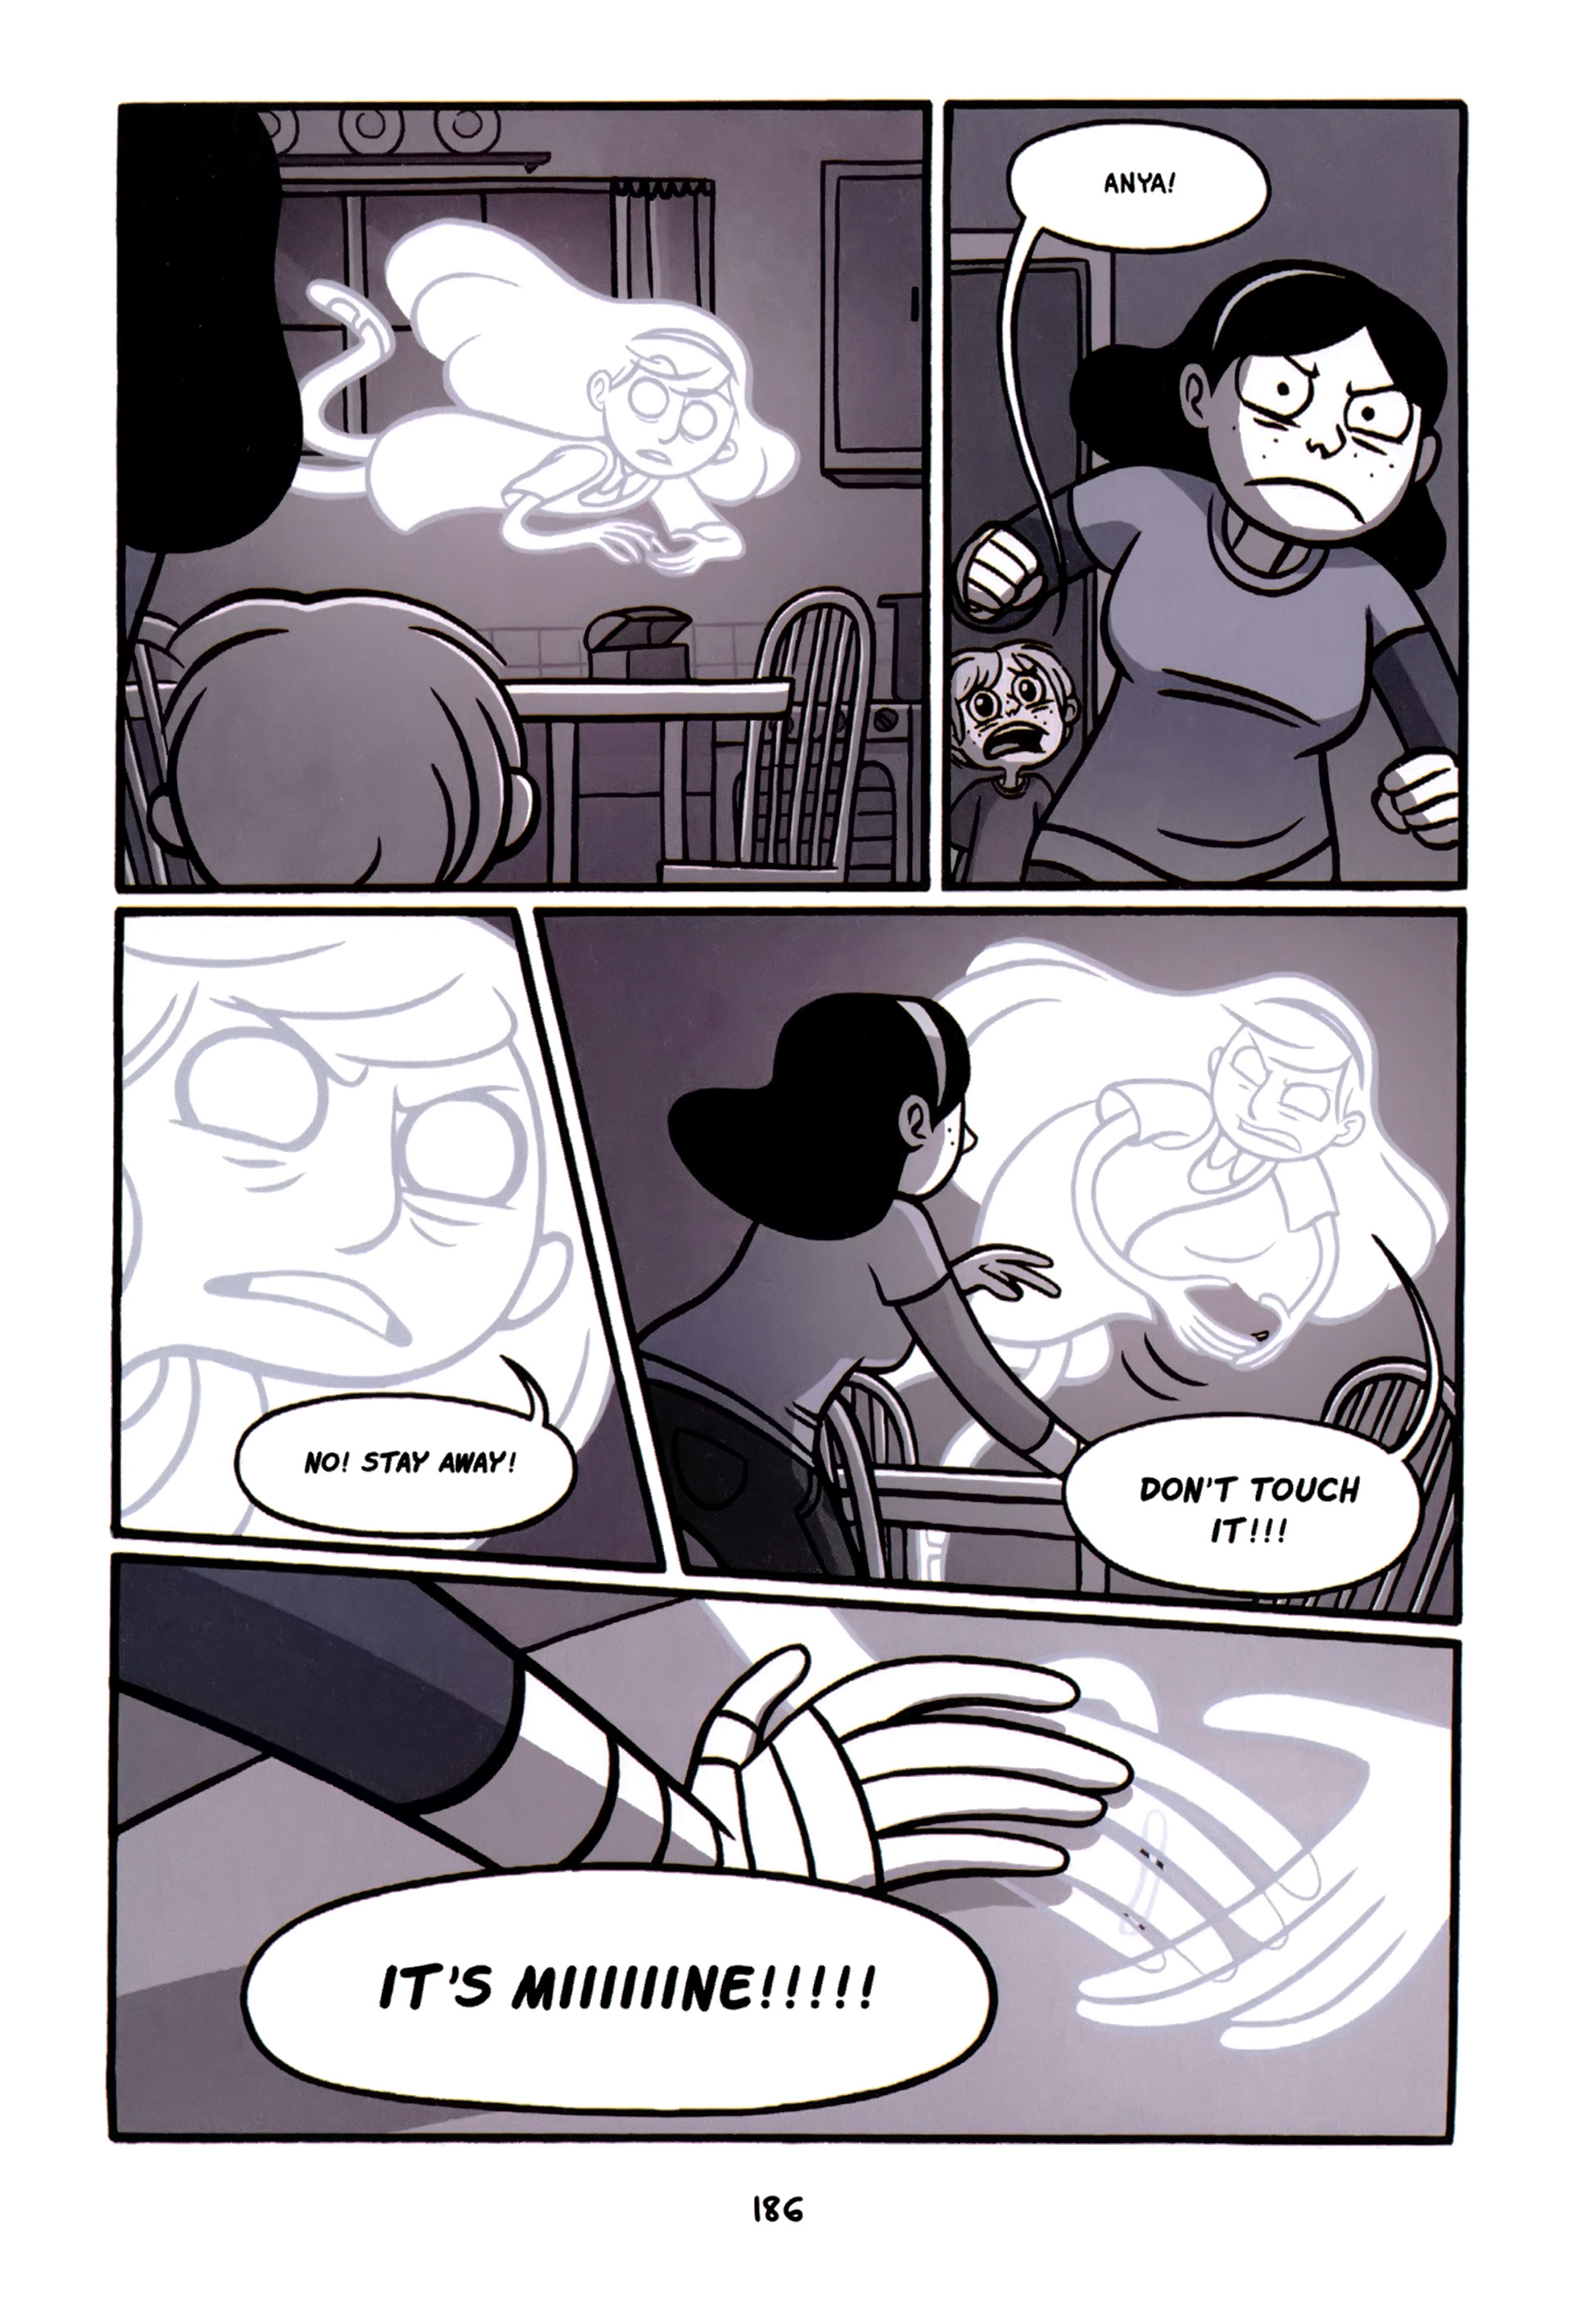 Read online Anya's Ghost comic -  Issue #1 - 187